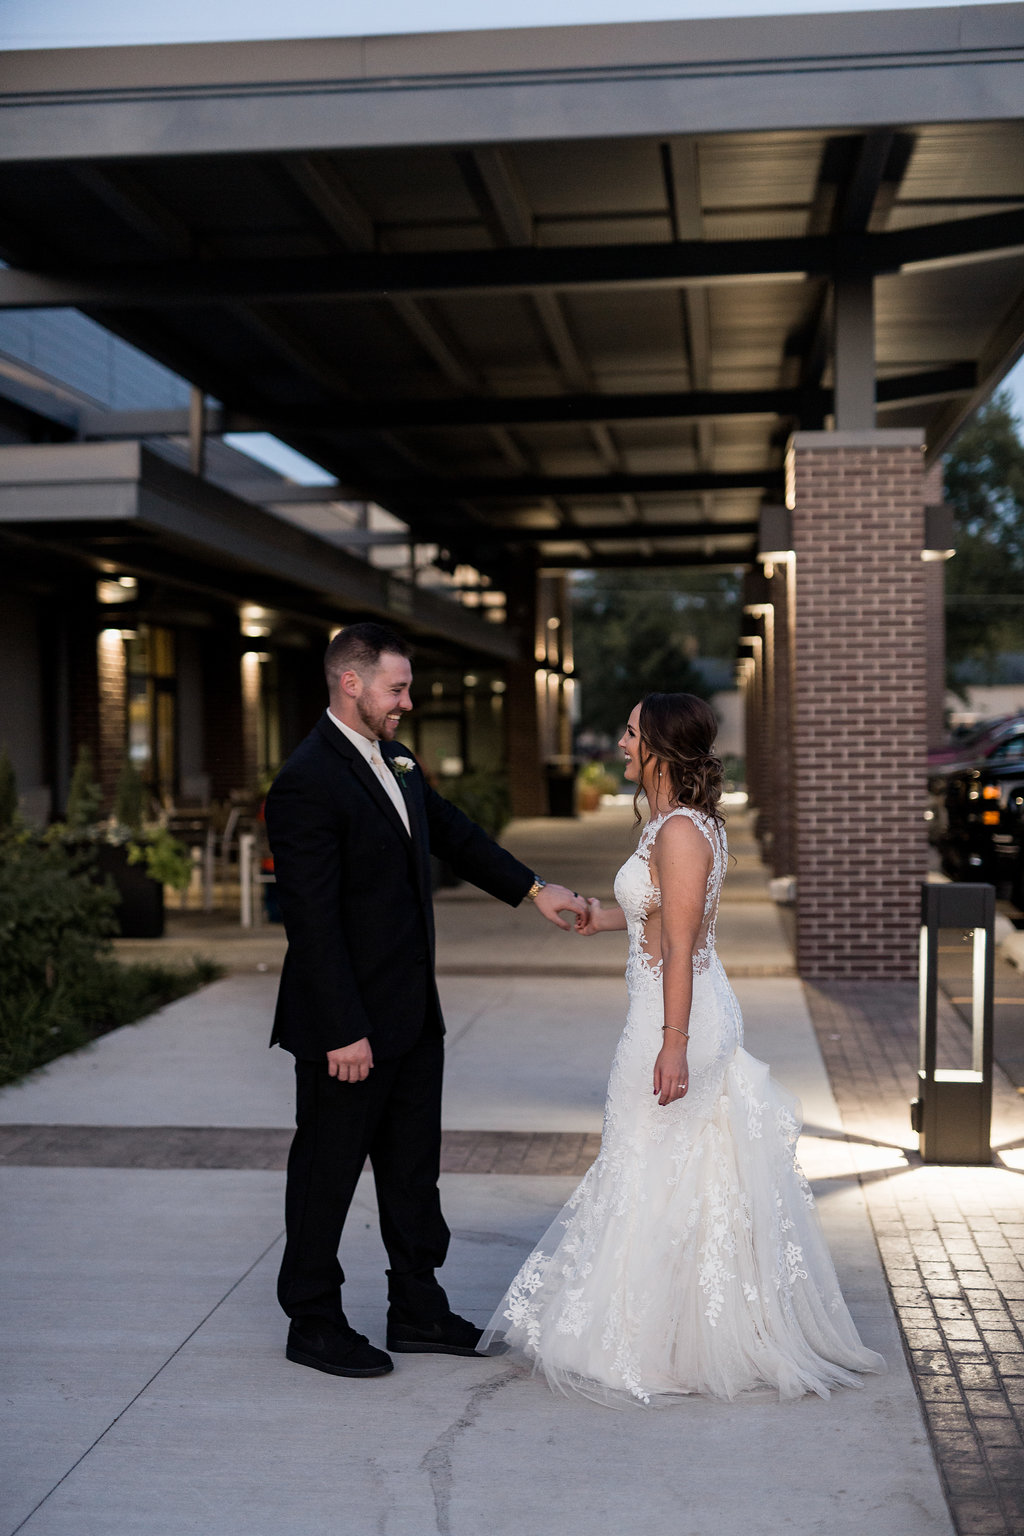 affordable_destination_wedding_photographer_JMH_photography-70.jpg